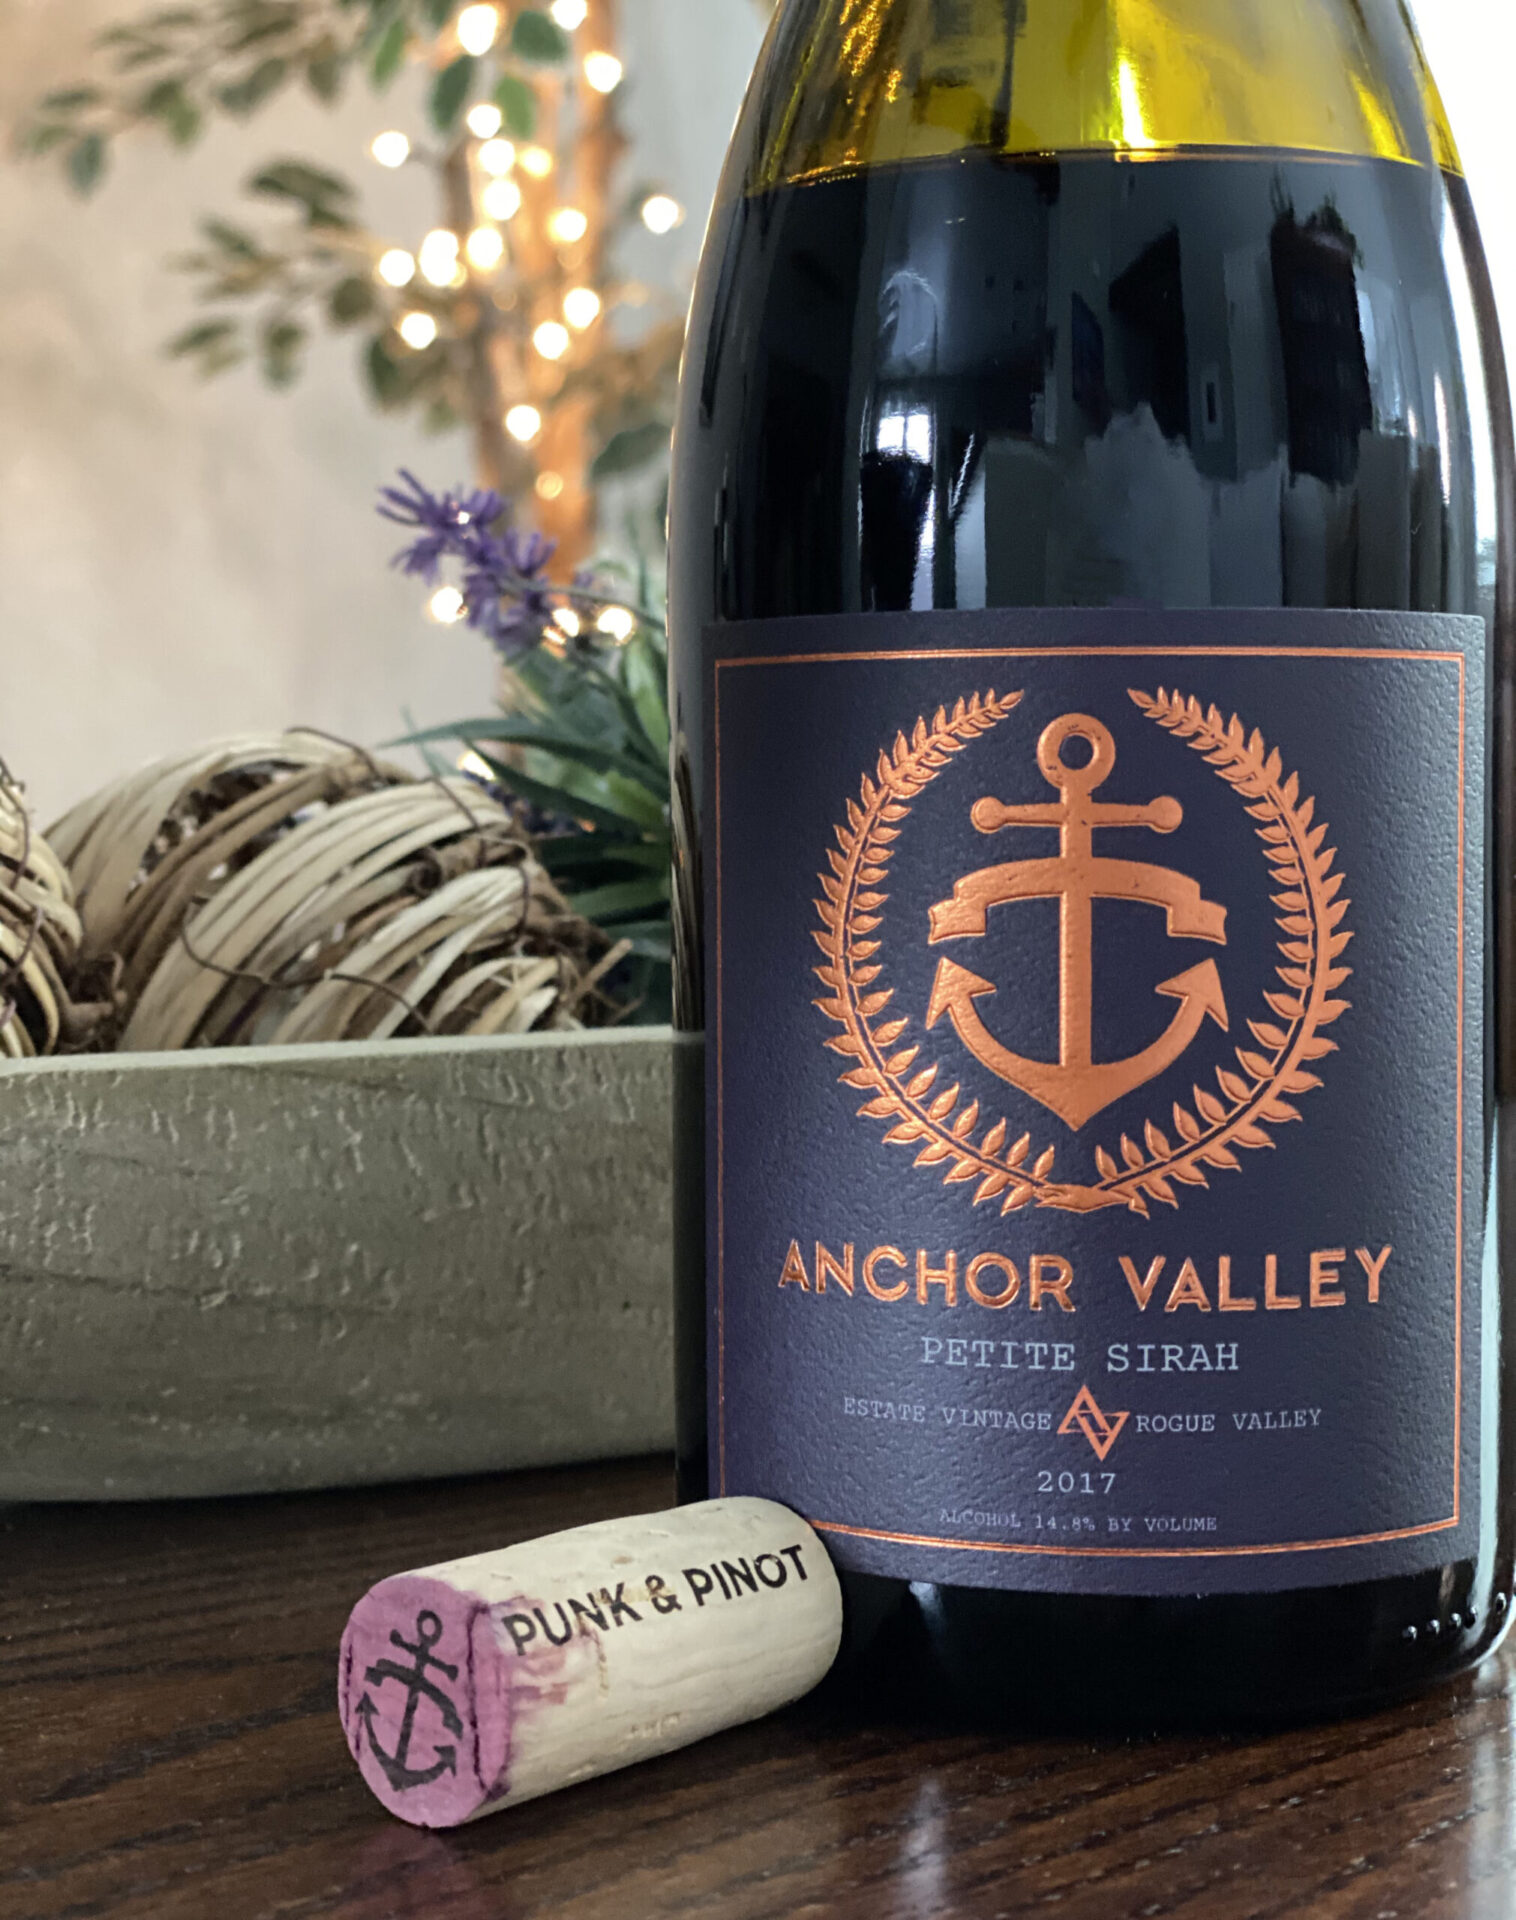 Anchor Valley Petite Sirah